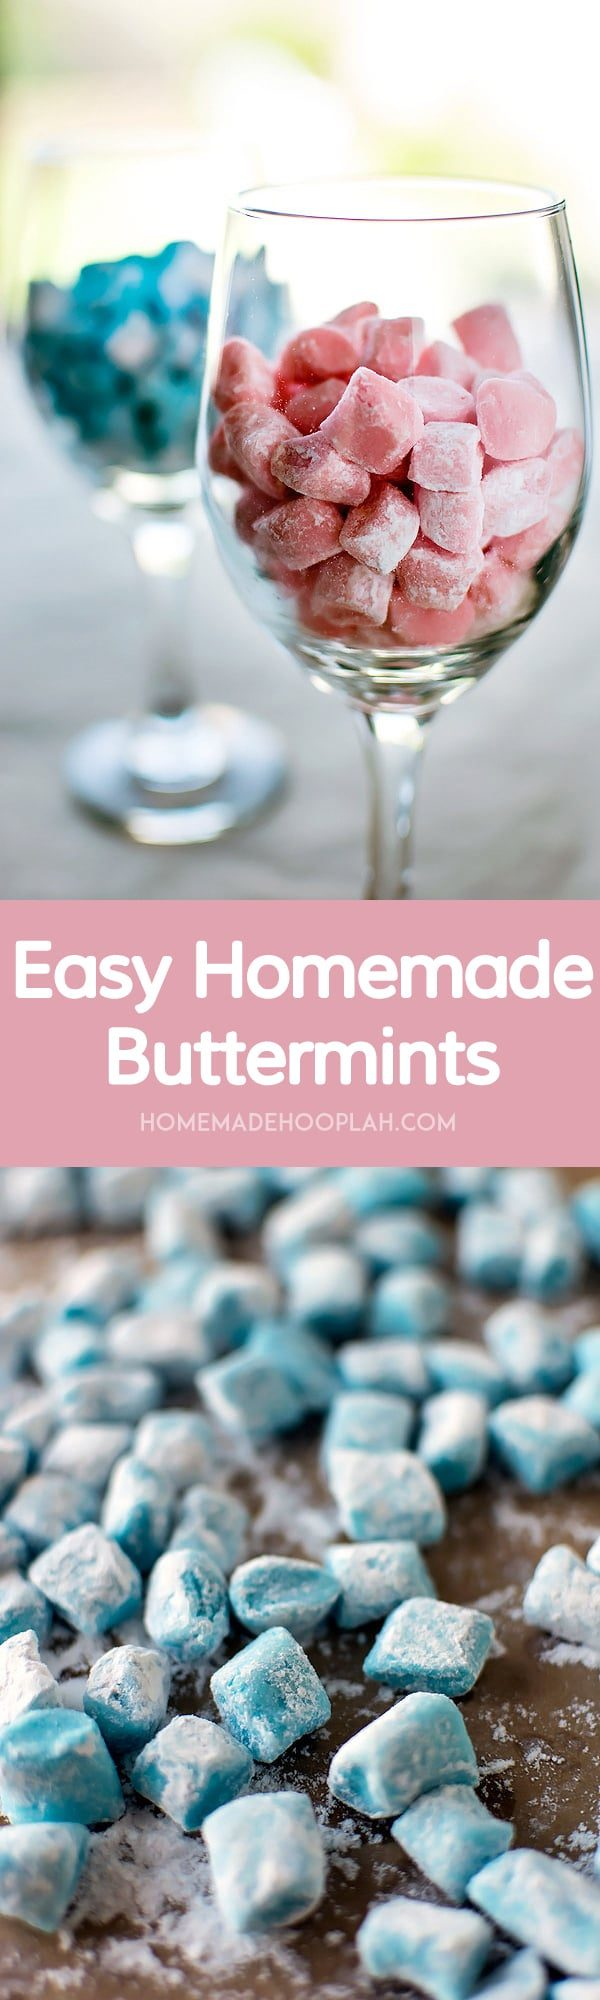 Easy Homemade Buttermints! Melt-in-your-mouth buttermints that are surprisingly easy to make at home.   HomemadeHooplah.com